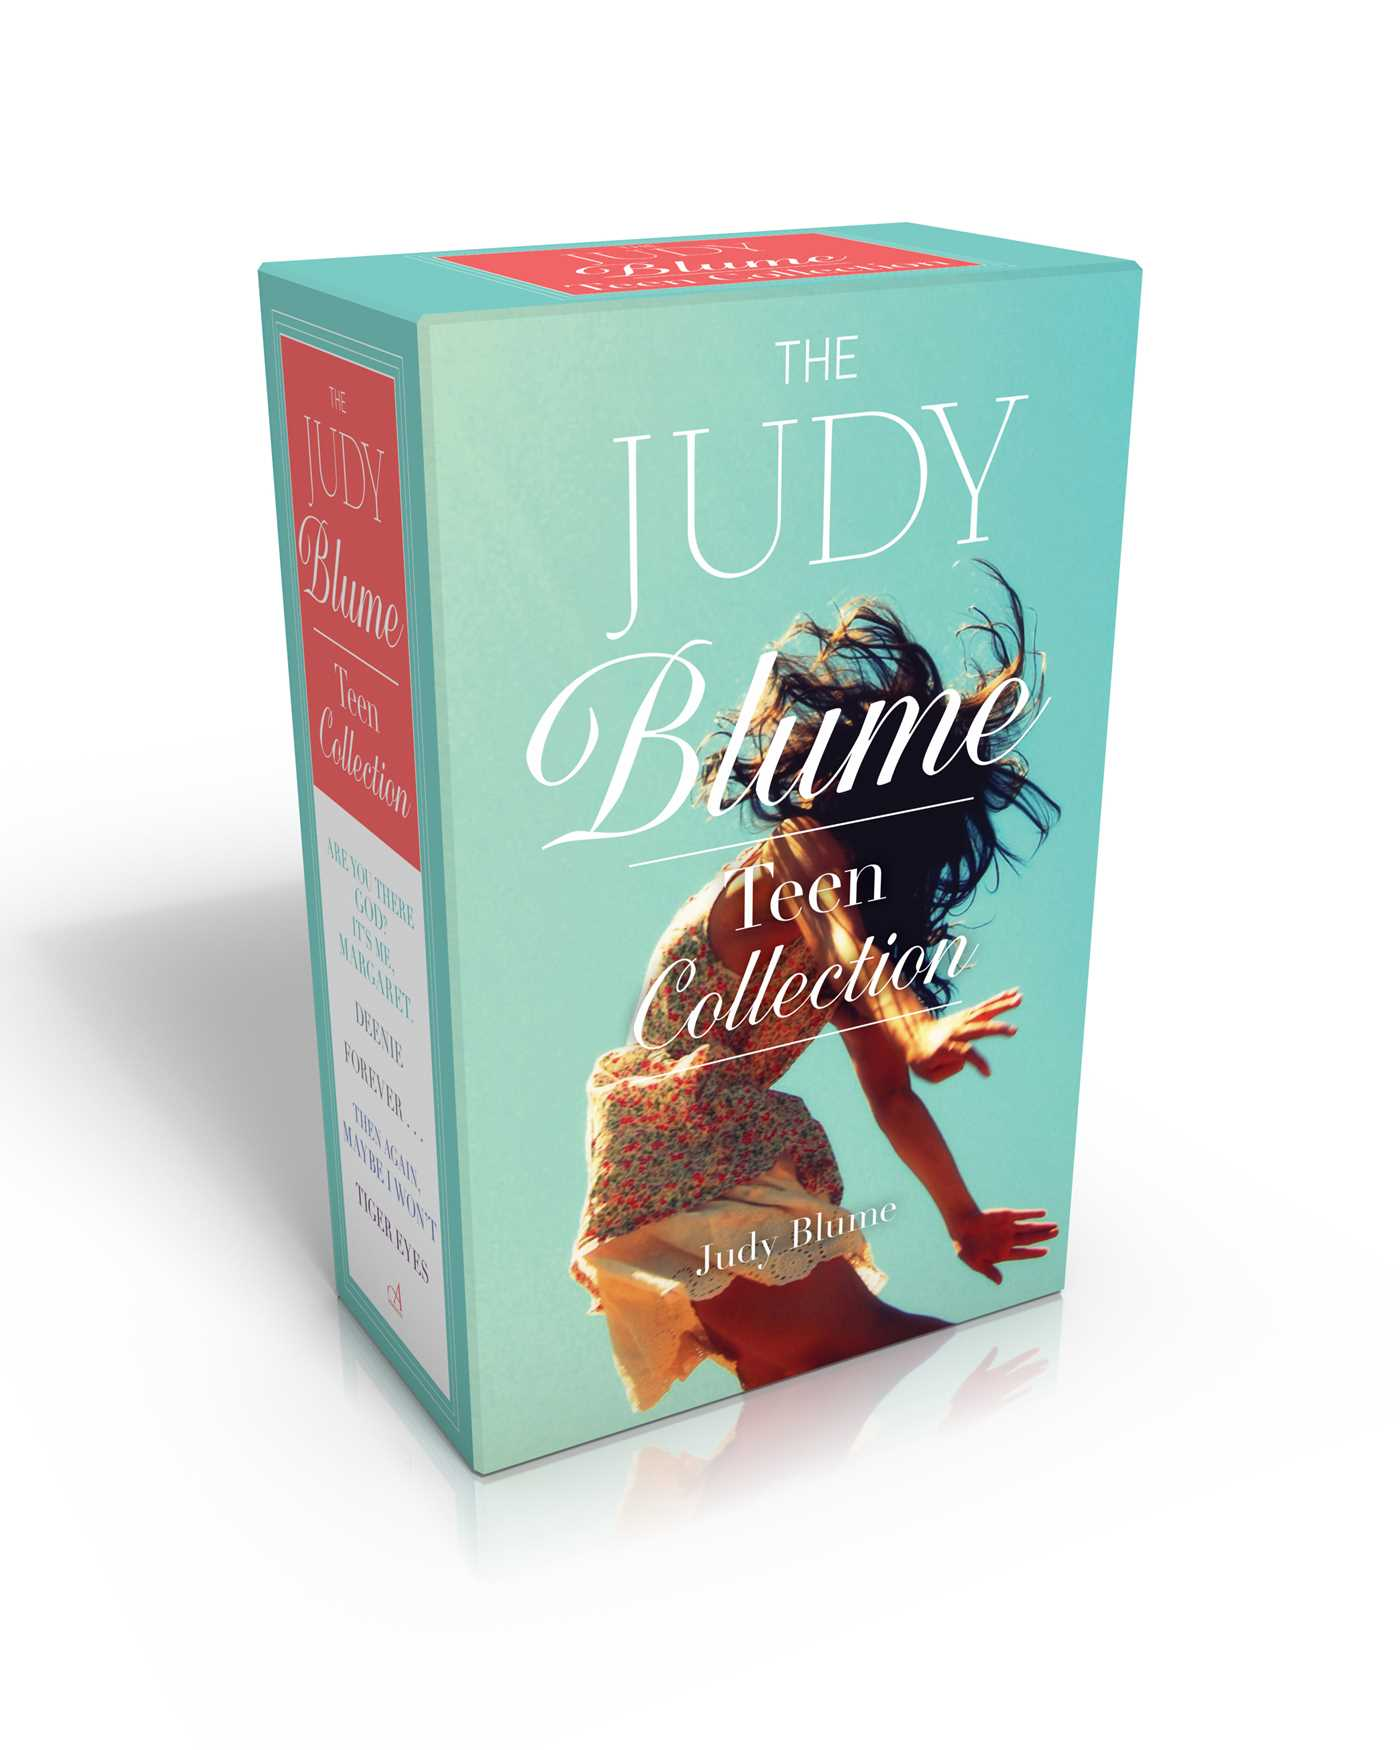 Judy blume teen collection 9781481435345 hr